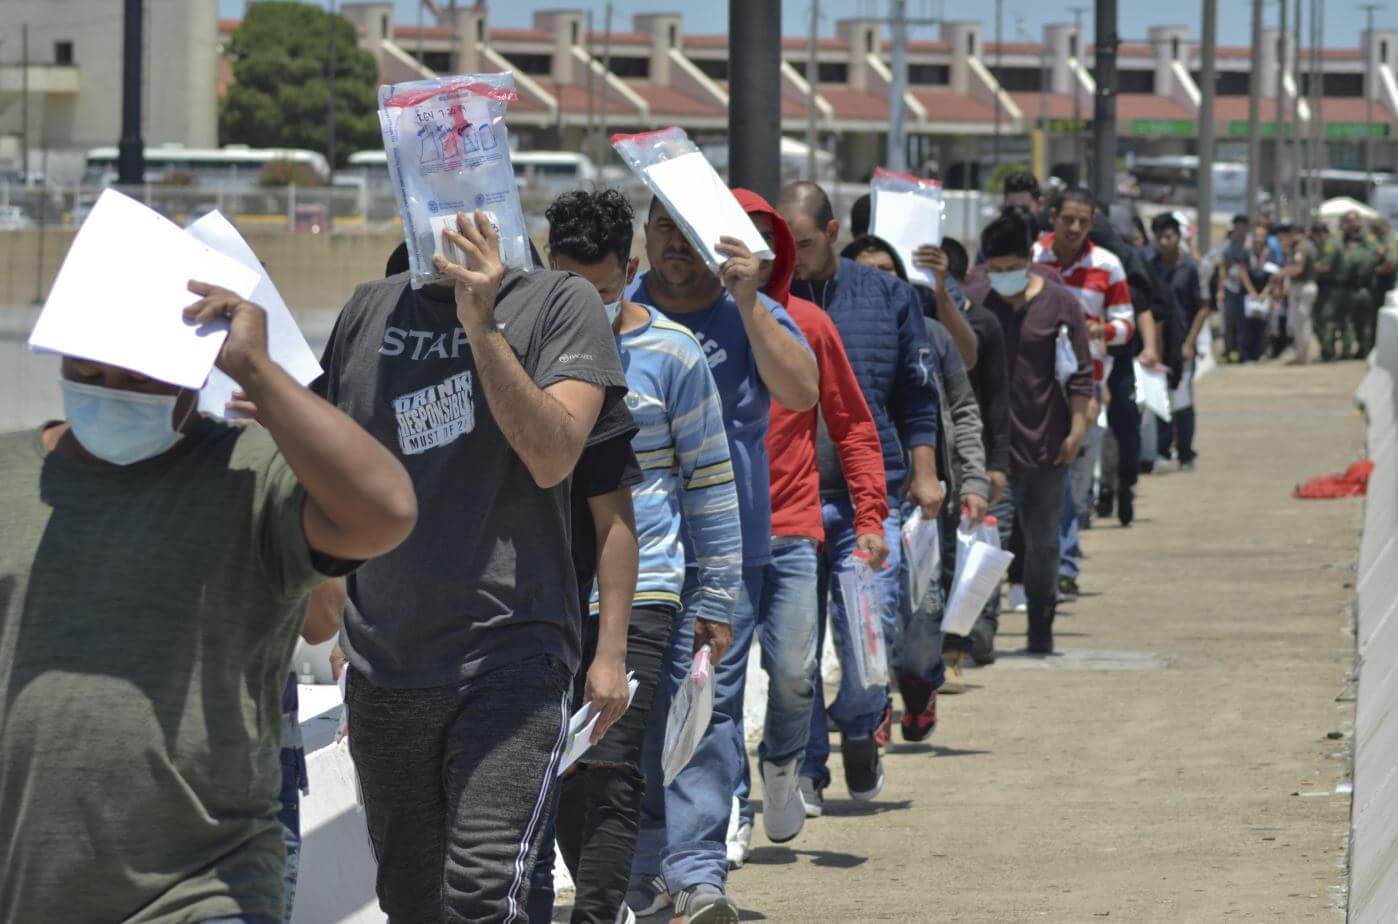 Thousands of migrants trapped in the northern and southern borders of Mexico, crowded in camps or begging on the streets, are 'terrified' of the spread of Covid-19, a pandemic that has hampered their asylum processes in this country and The United States plunging them into total uncertainty. The migratory wave that crosses the Mexican territory to reach the United States is a latent regional phenomenon that worsened in late 2018 with the emergence of massive caravans.